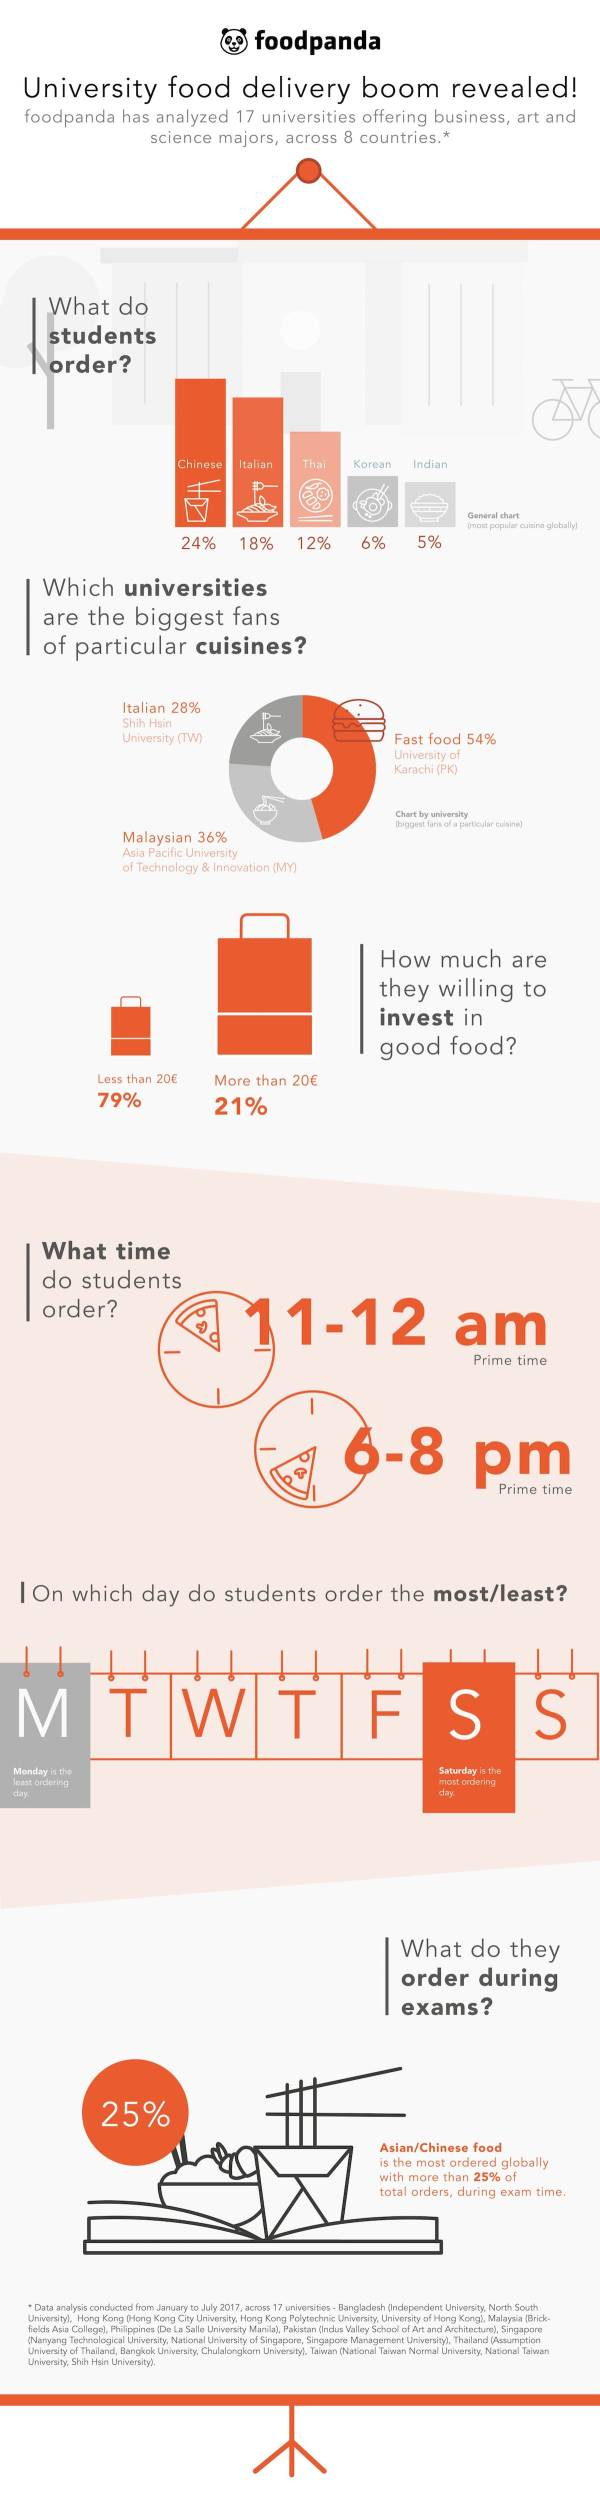 foodpanda University Food Delivery Boom infographic